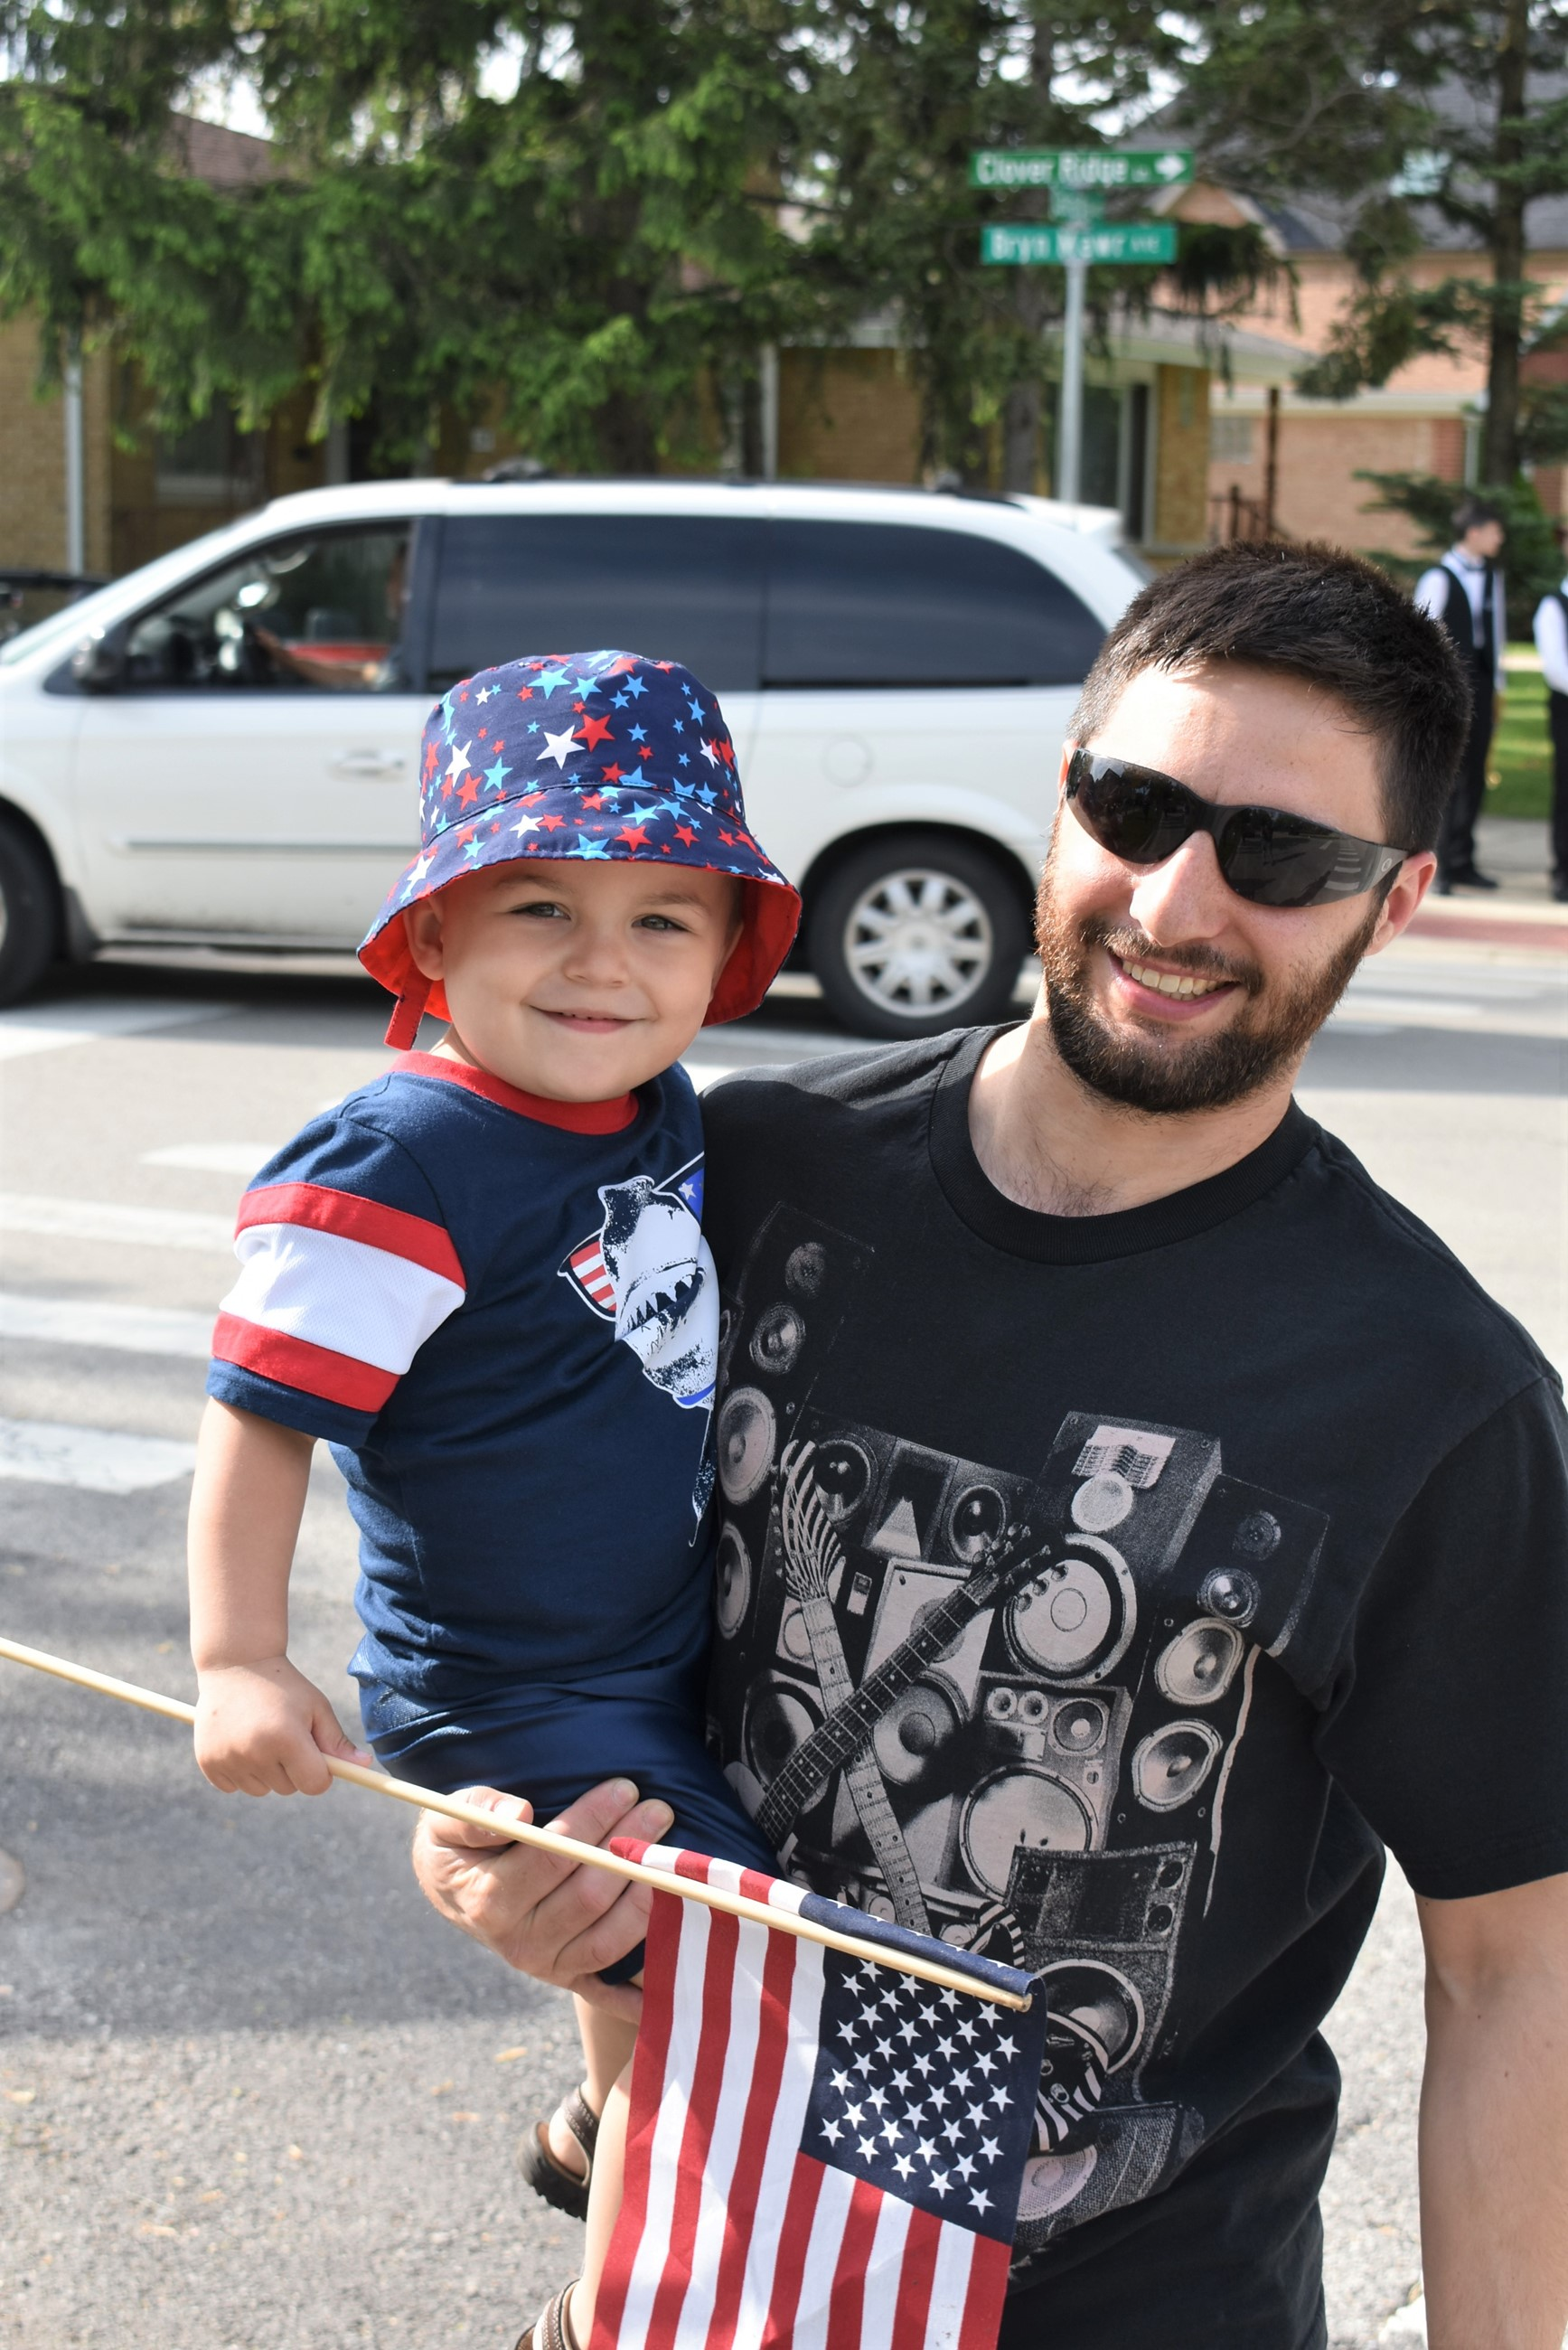 Mem Day Parade Boy and Dad 2019.JPG